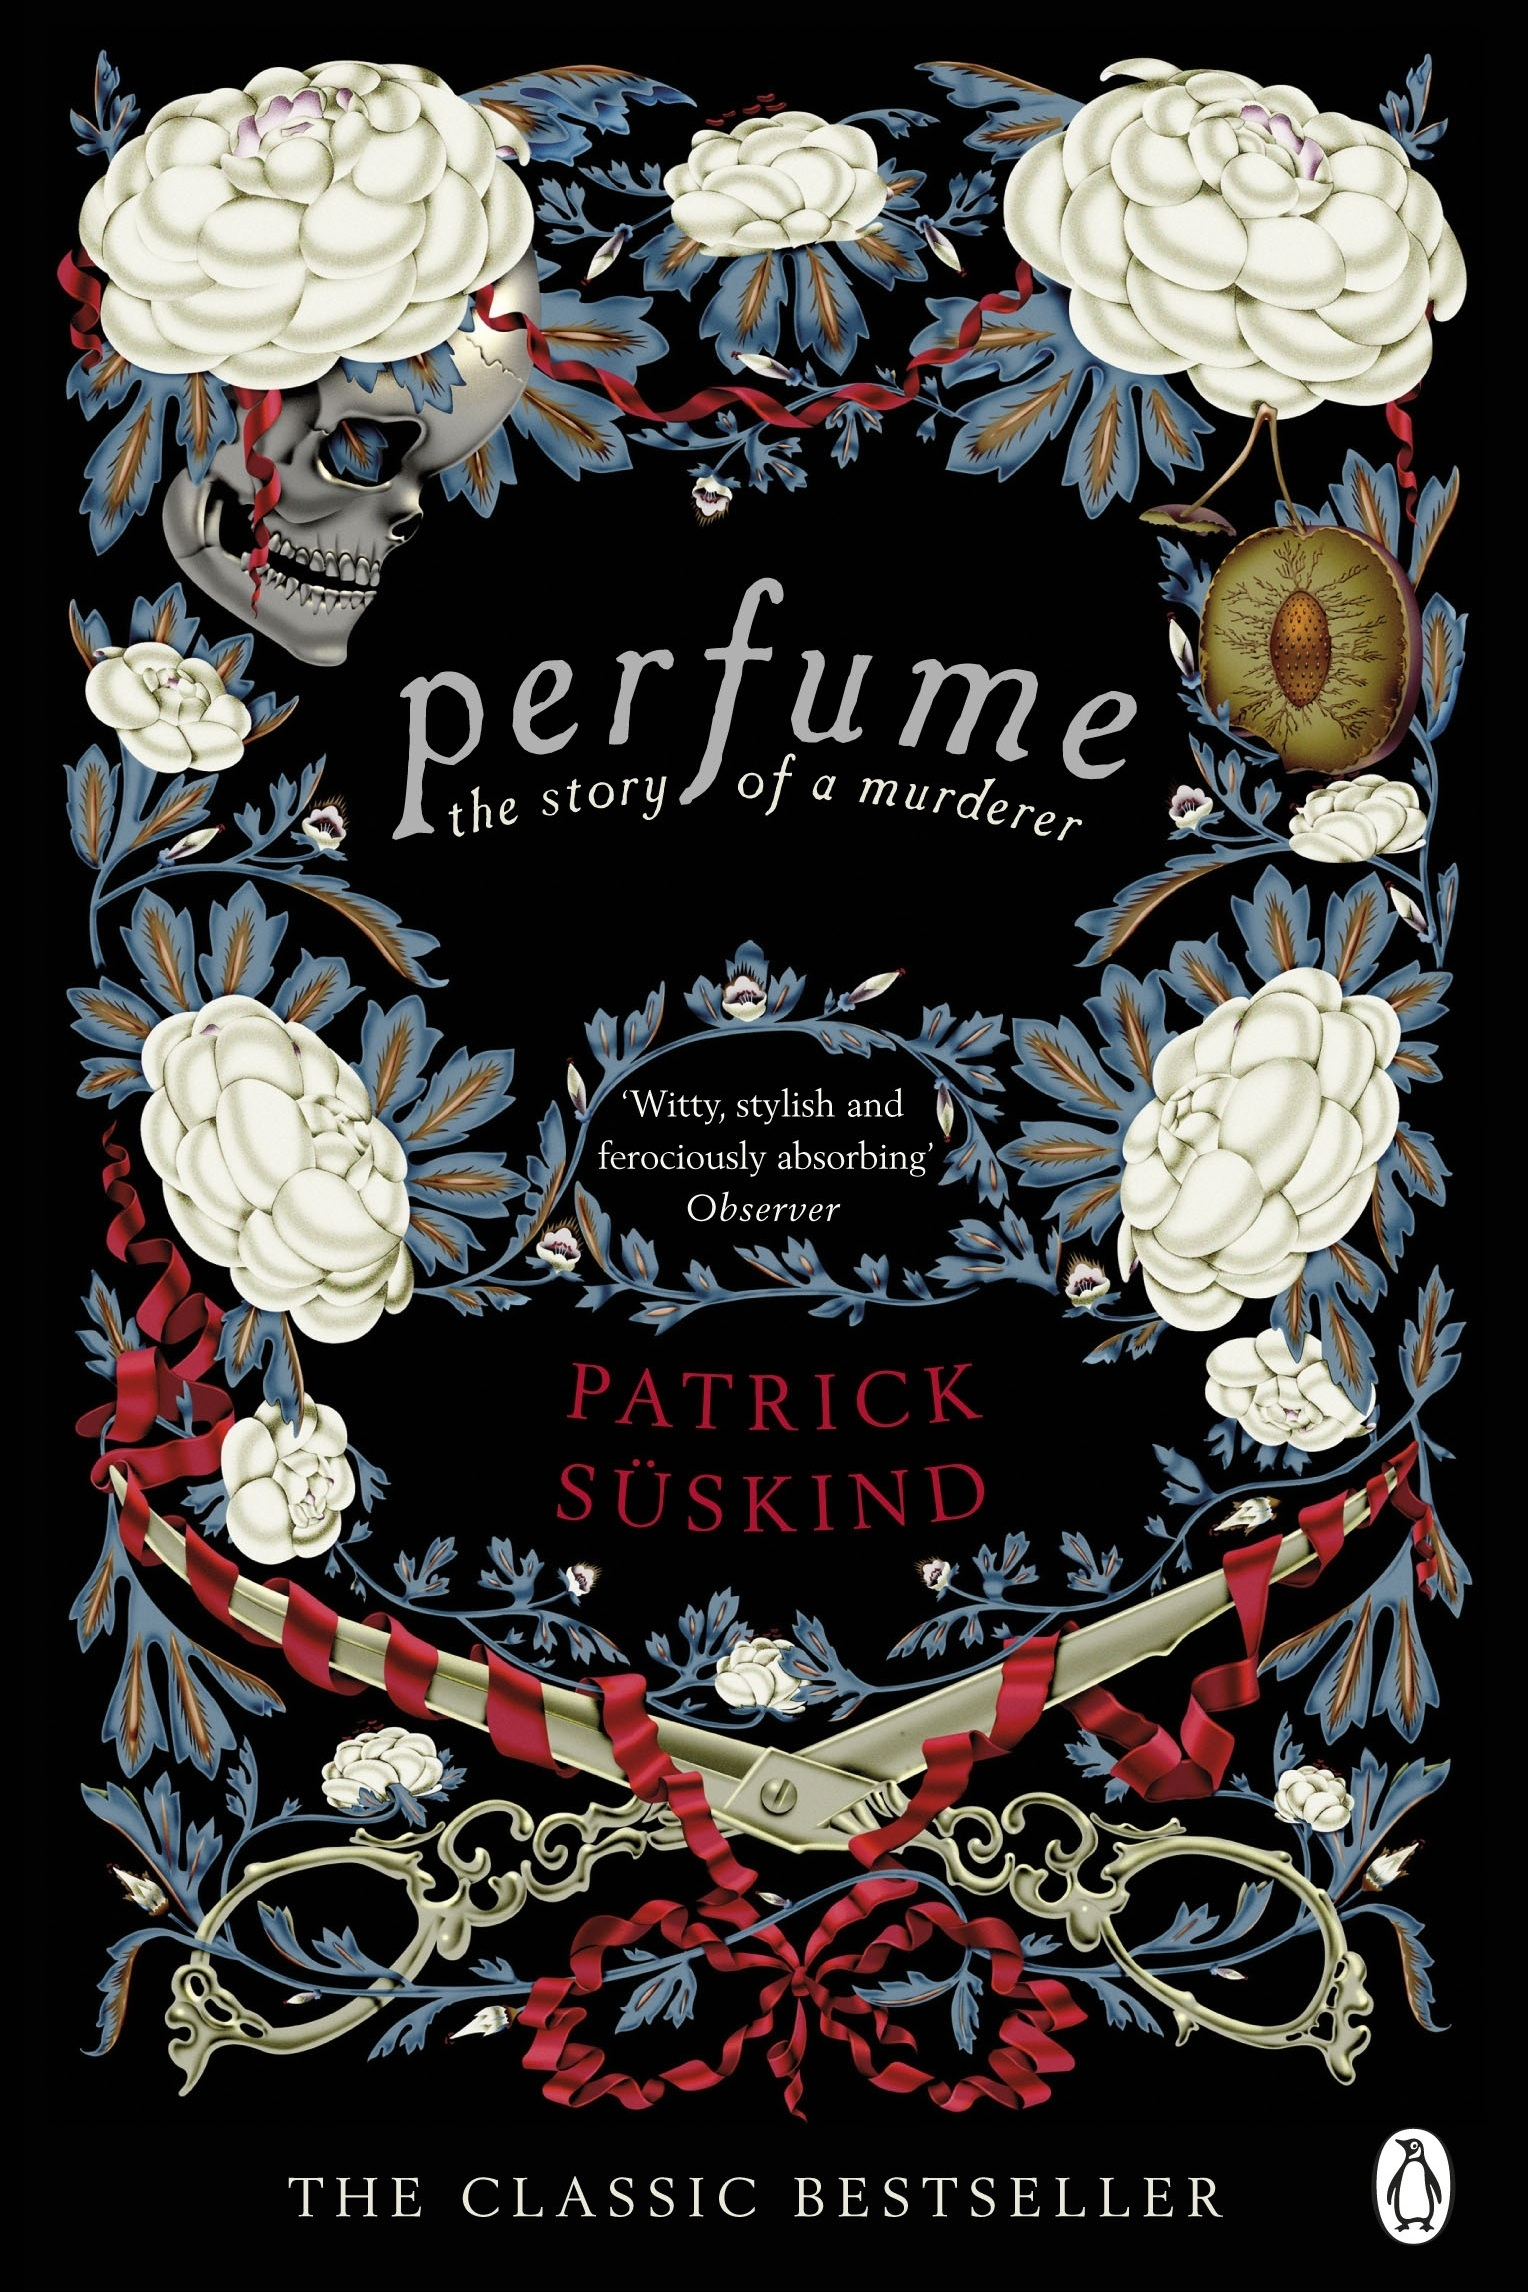 Perfume: Story of a Murderer - Patrick Suskind (#2 Most Recommended!)